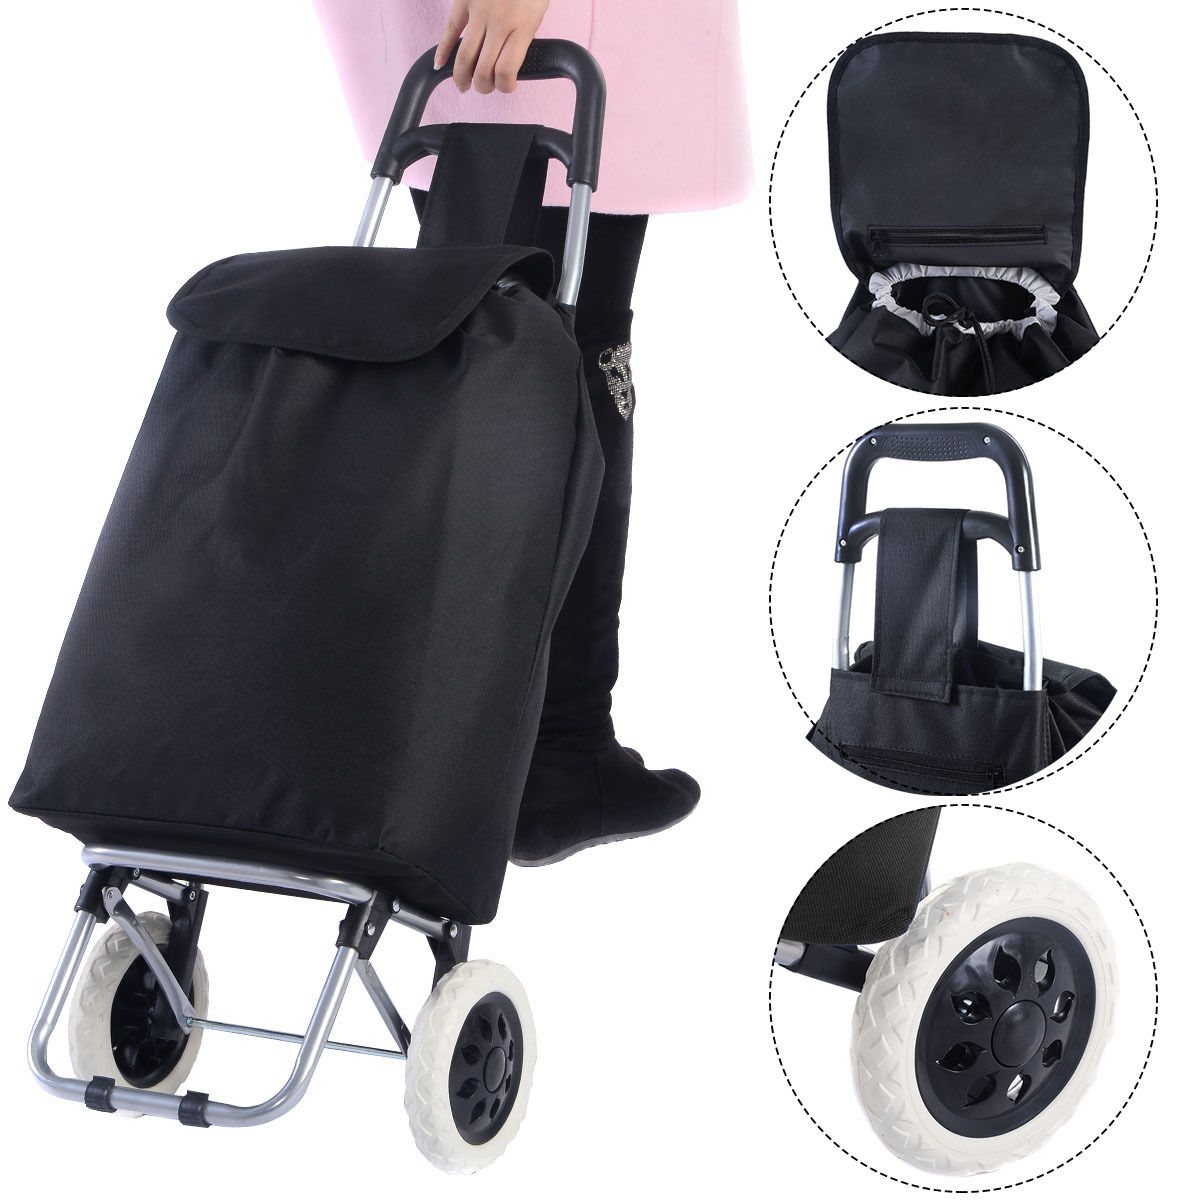 Costway Light Weight Wheeled Shopping Trolley Push Cart Bag